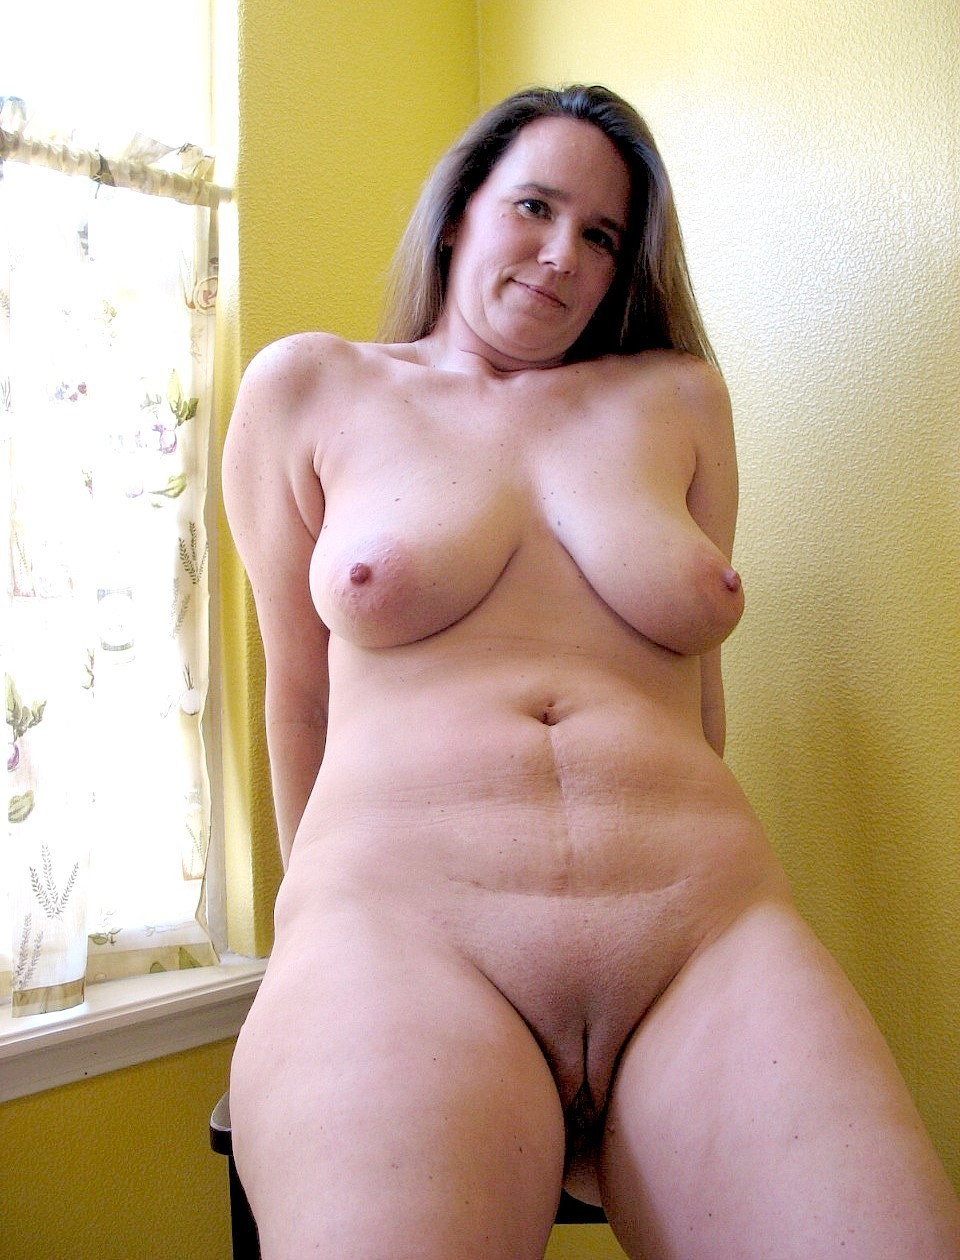 Chubby 40 year old moms